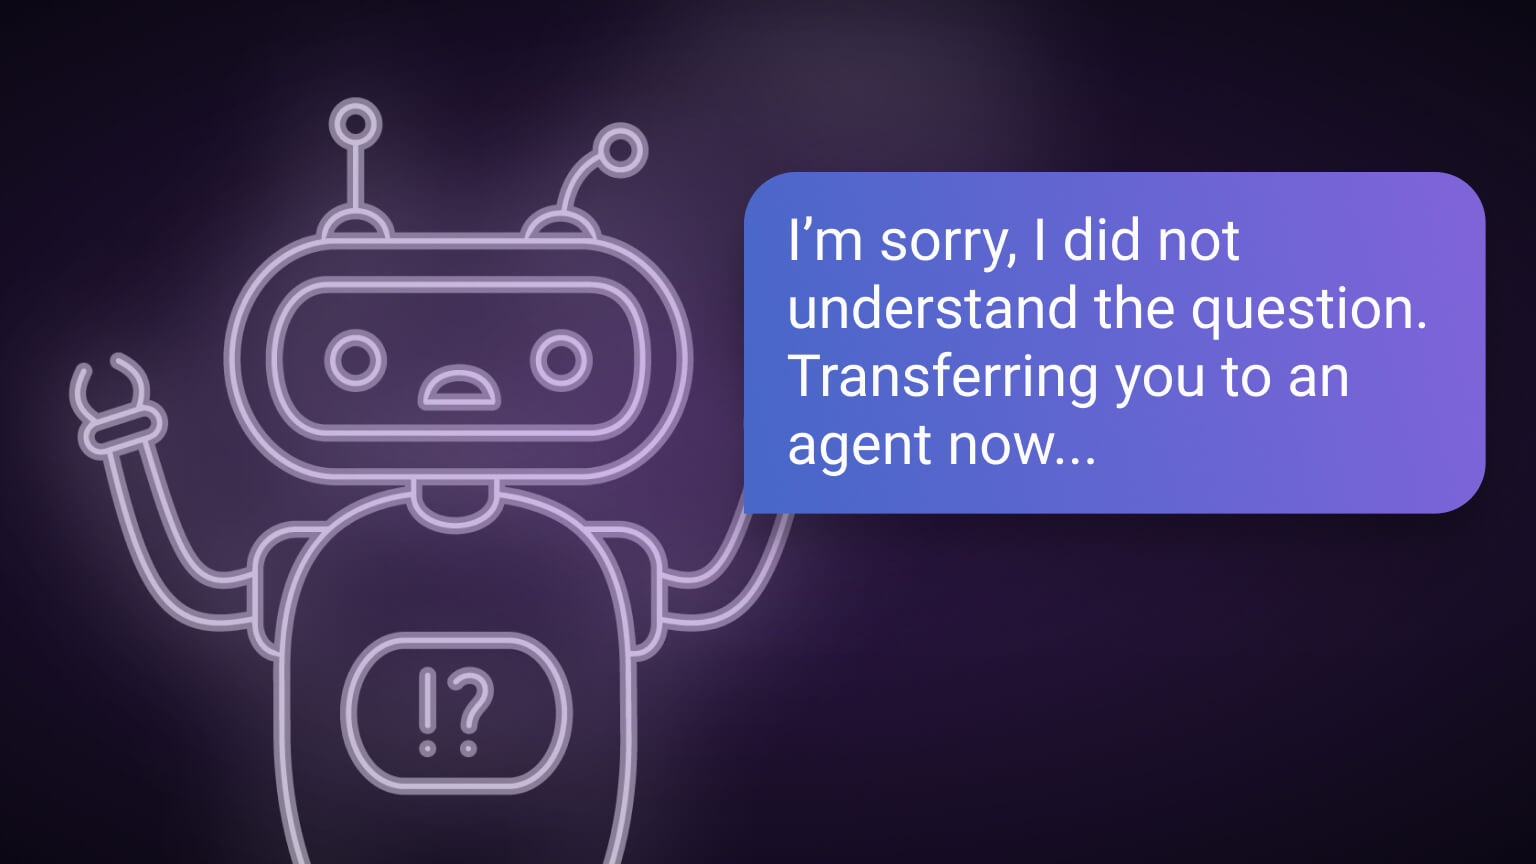 Bot conversation example of escalating to human agents